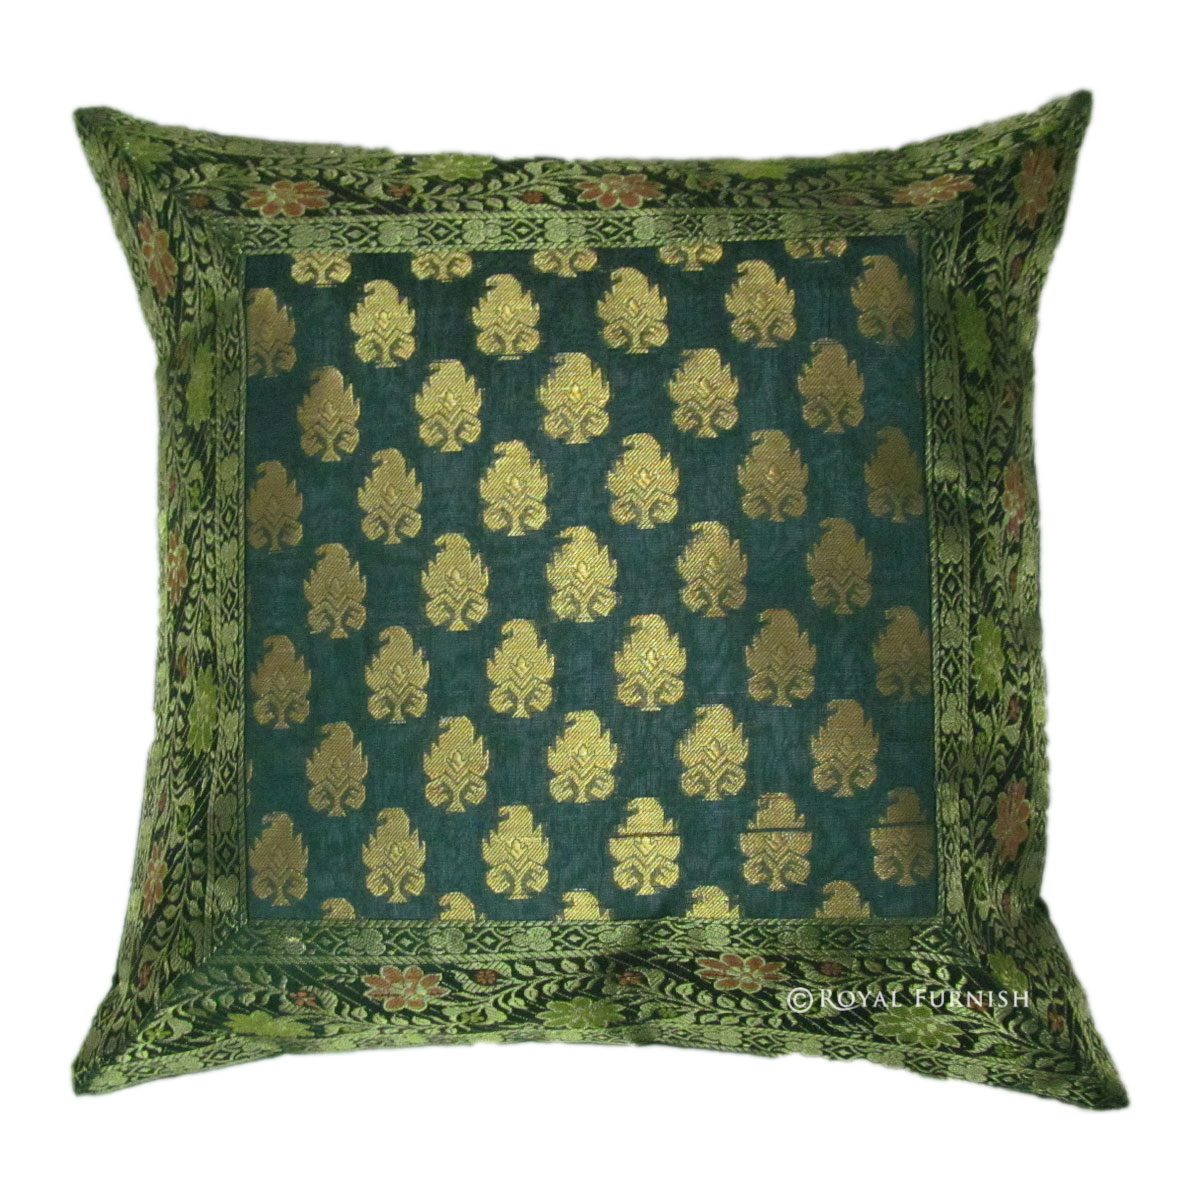 Throw Pillows For A Floral Couch : Decorative Silk Brocade Throw Floral Pillow Cover - RoyalFurnish.com